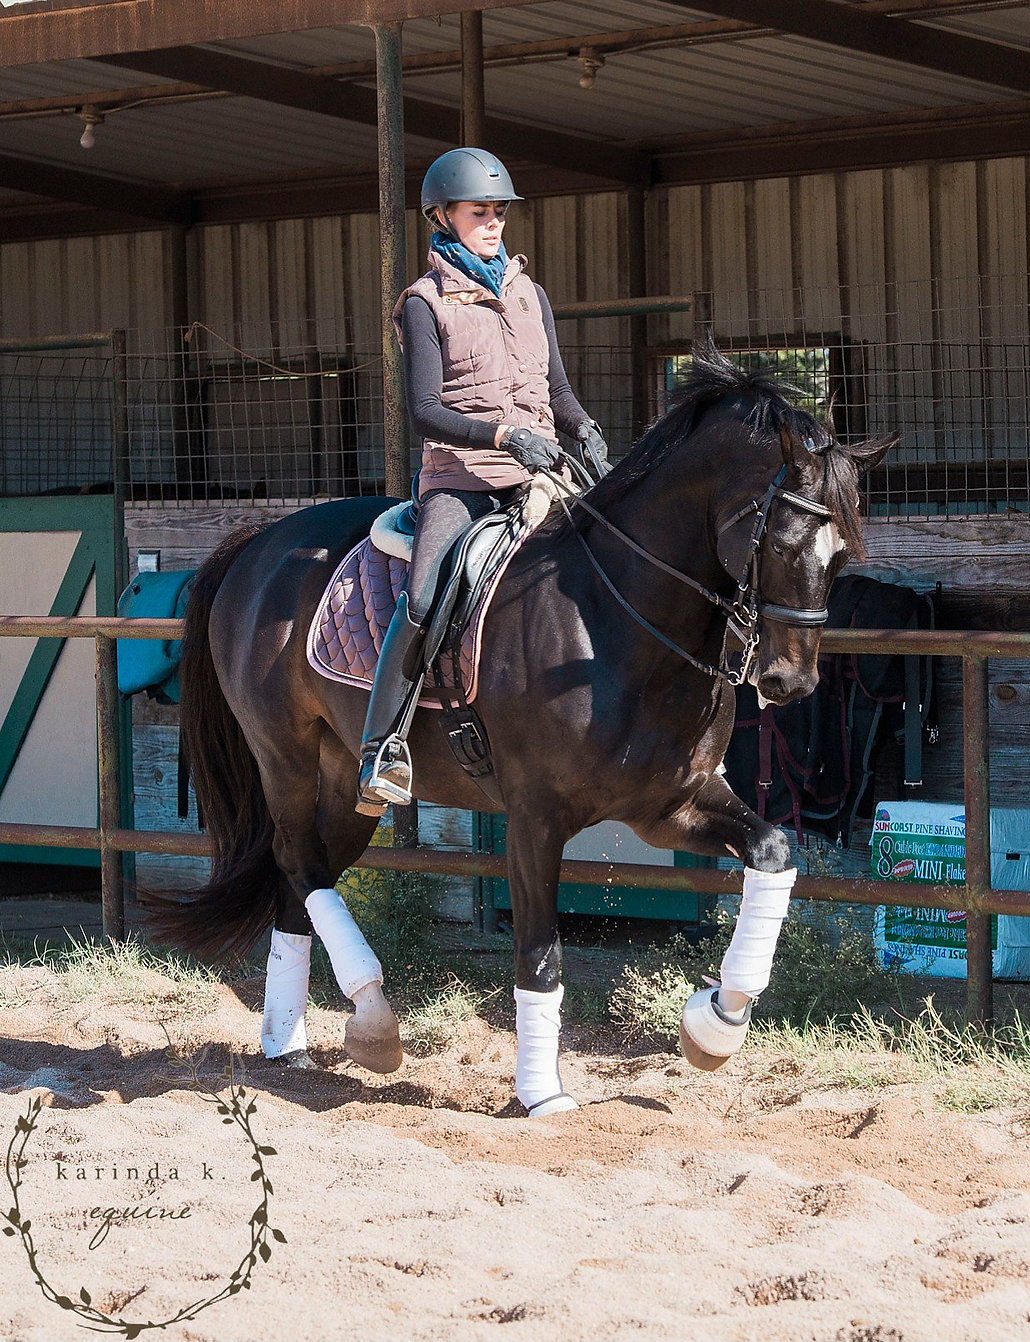 Dressage training in Dripping Springs